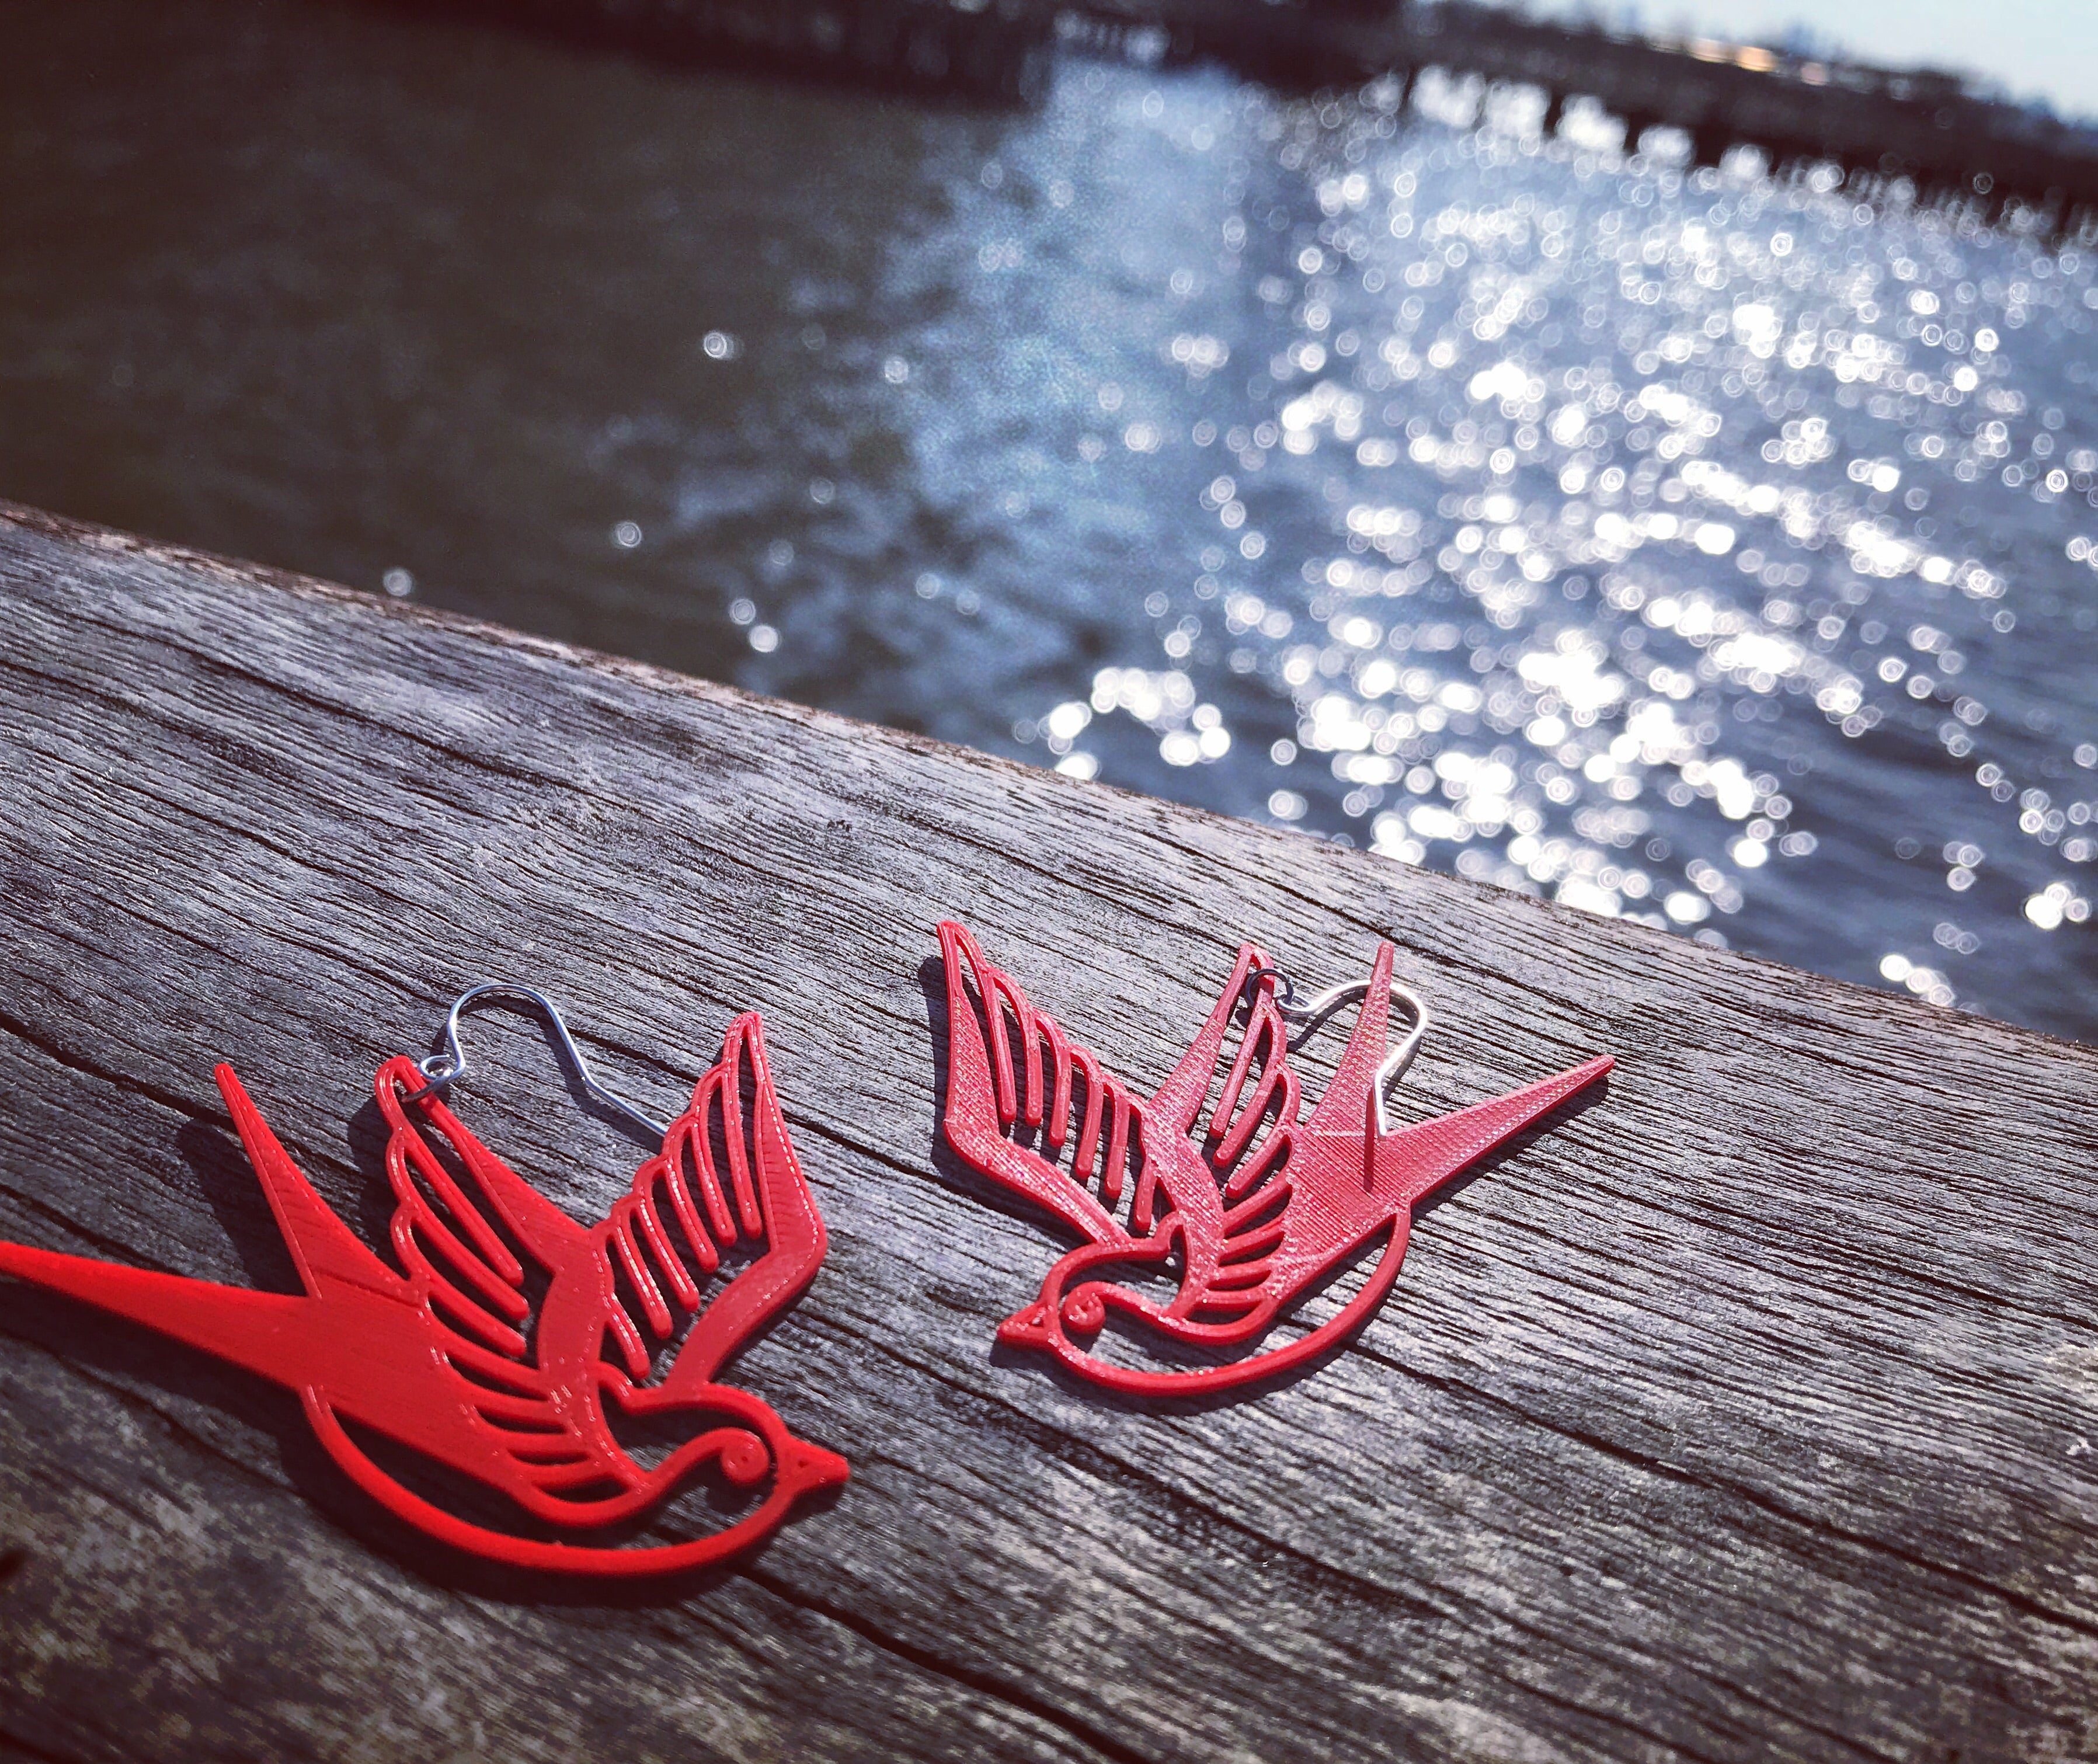 Shown on a wooden pier with the shimmering water in the background are two 3D printed R+D earrings. They are a bright fire engine red color and shaped like  swallows or sparrows. The birds are a classic look like sailor tattoos that mark one's journey.